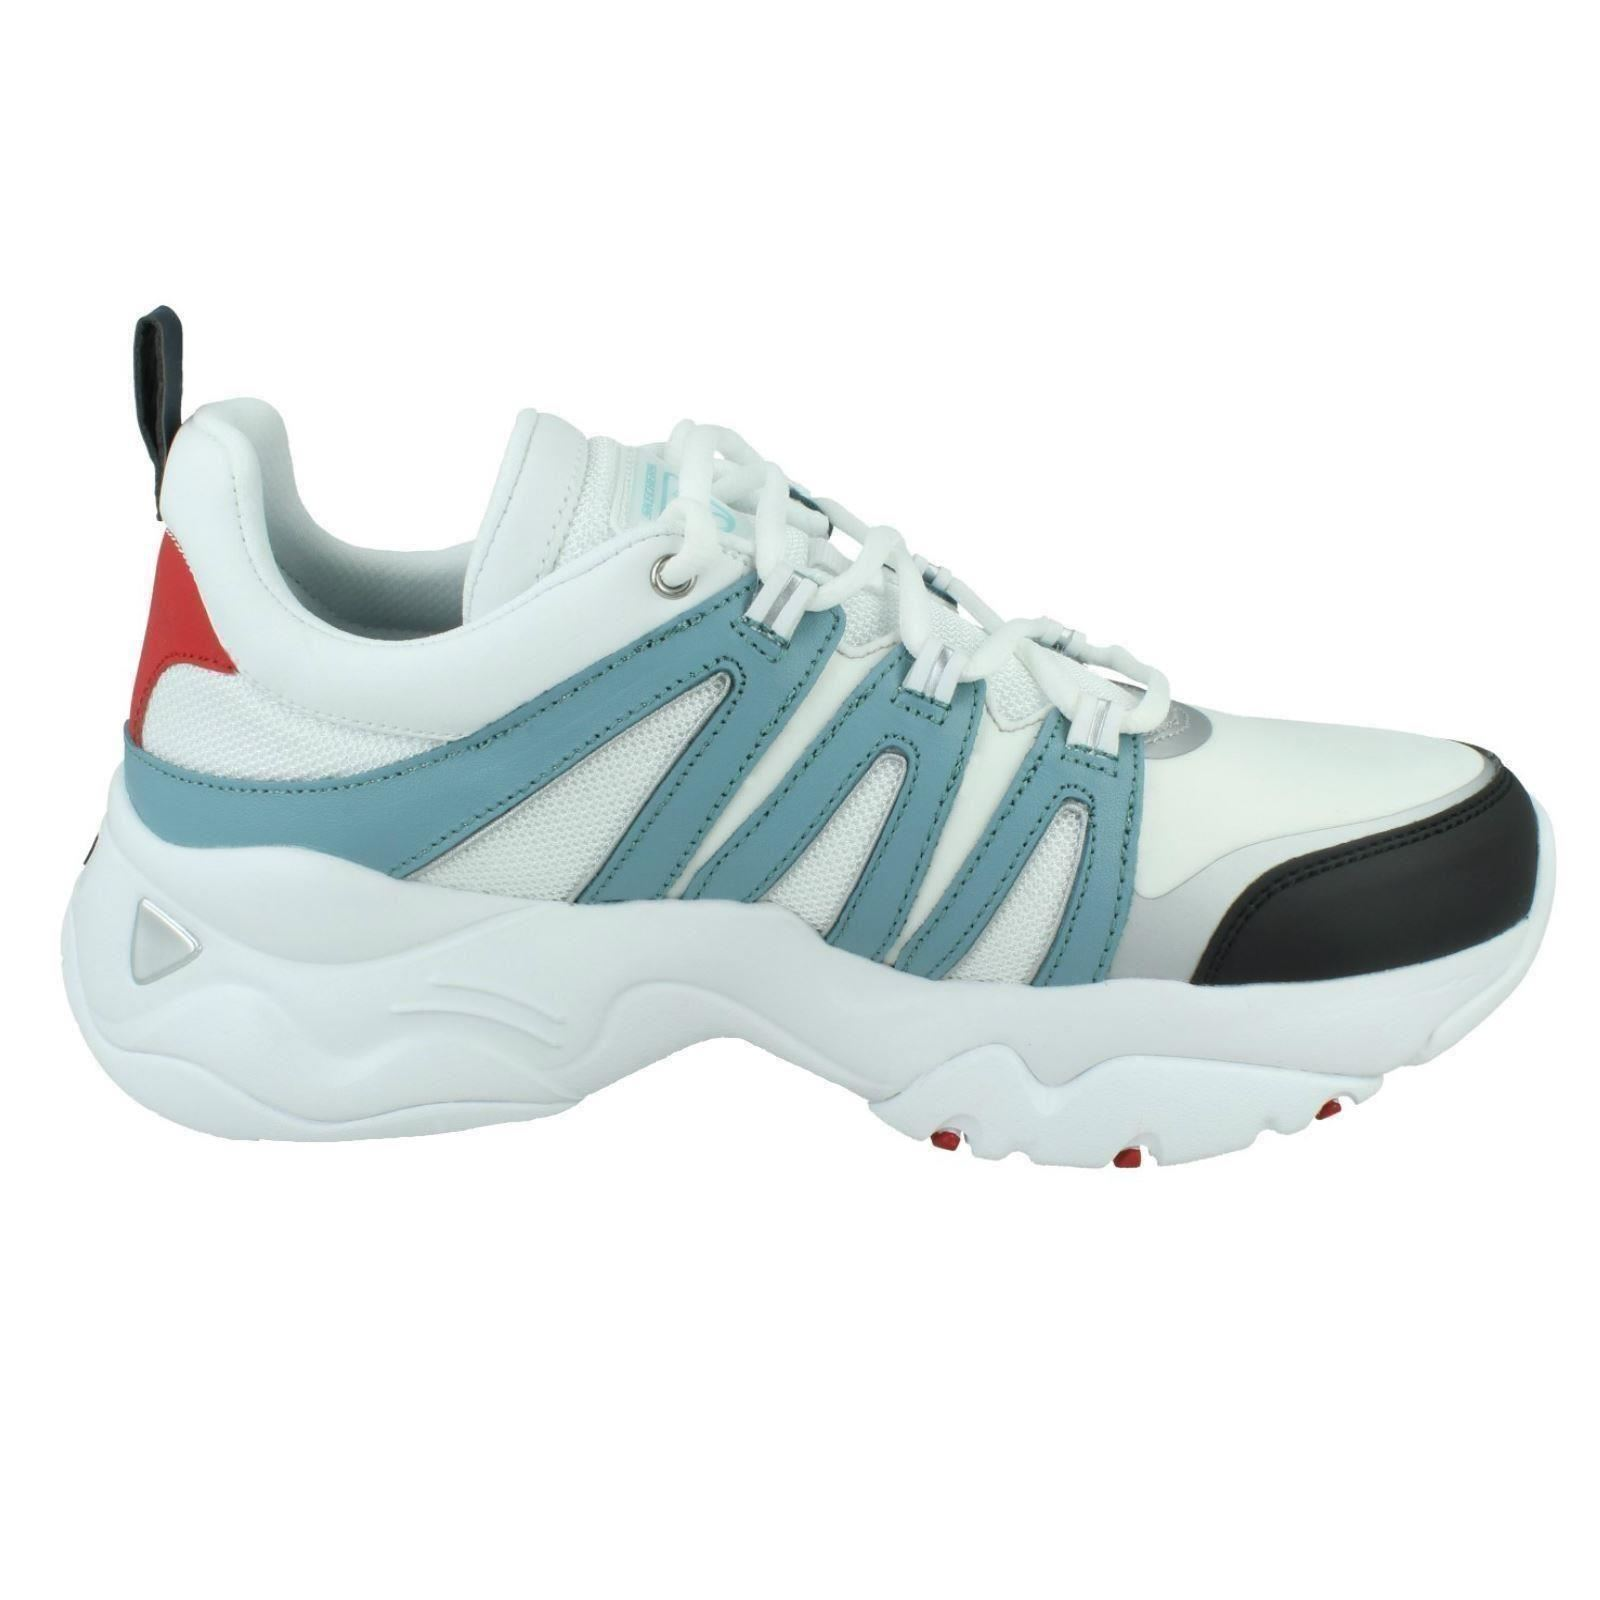 Ladies Skechers 12957 Casual Lace Up